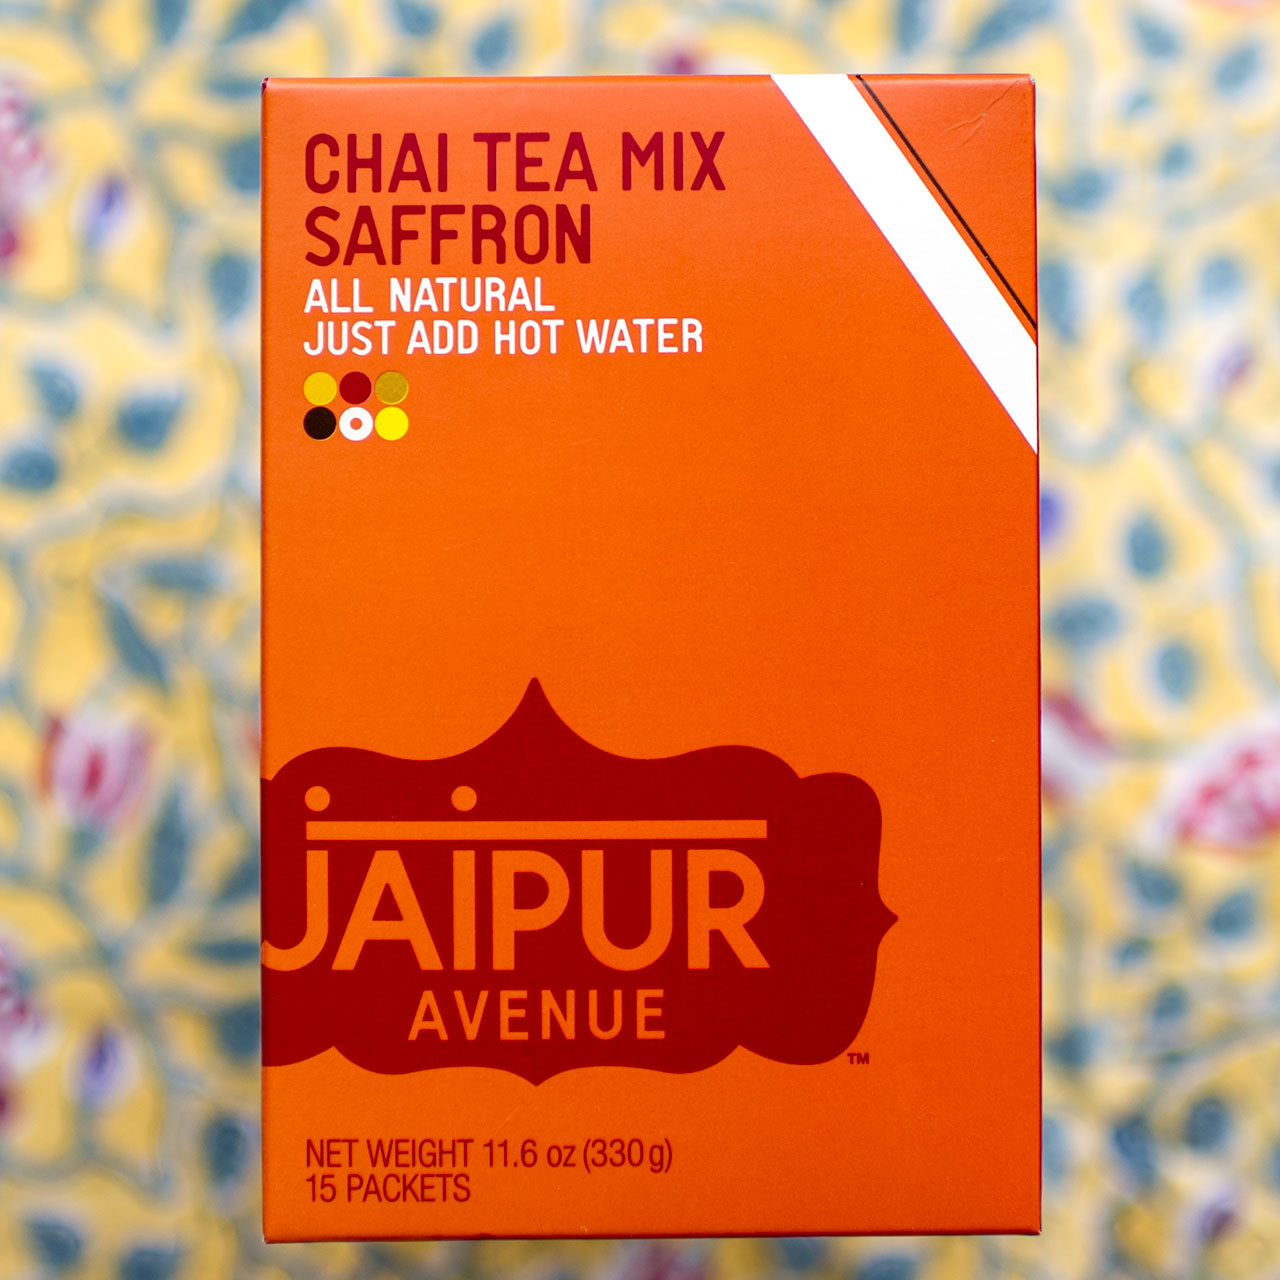 Jaipur Avenue Saffron Chai Tea Mix